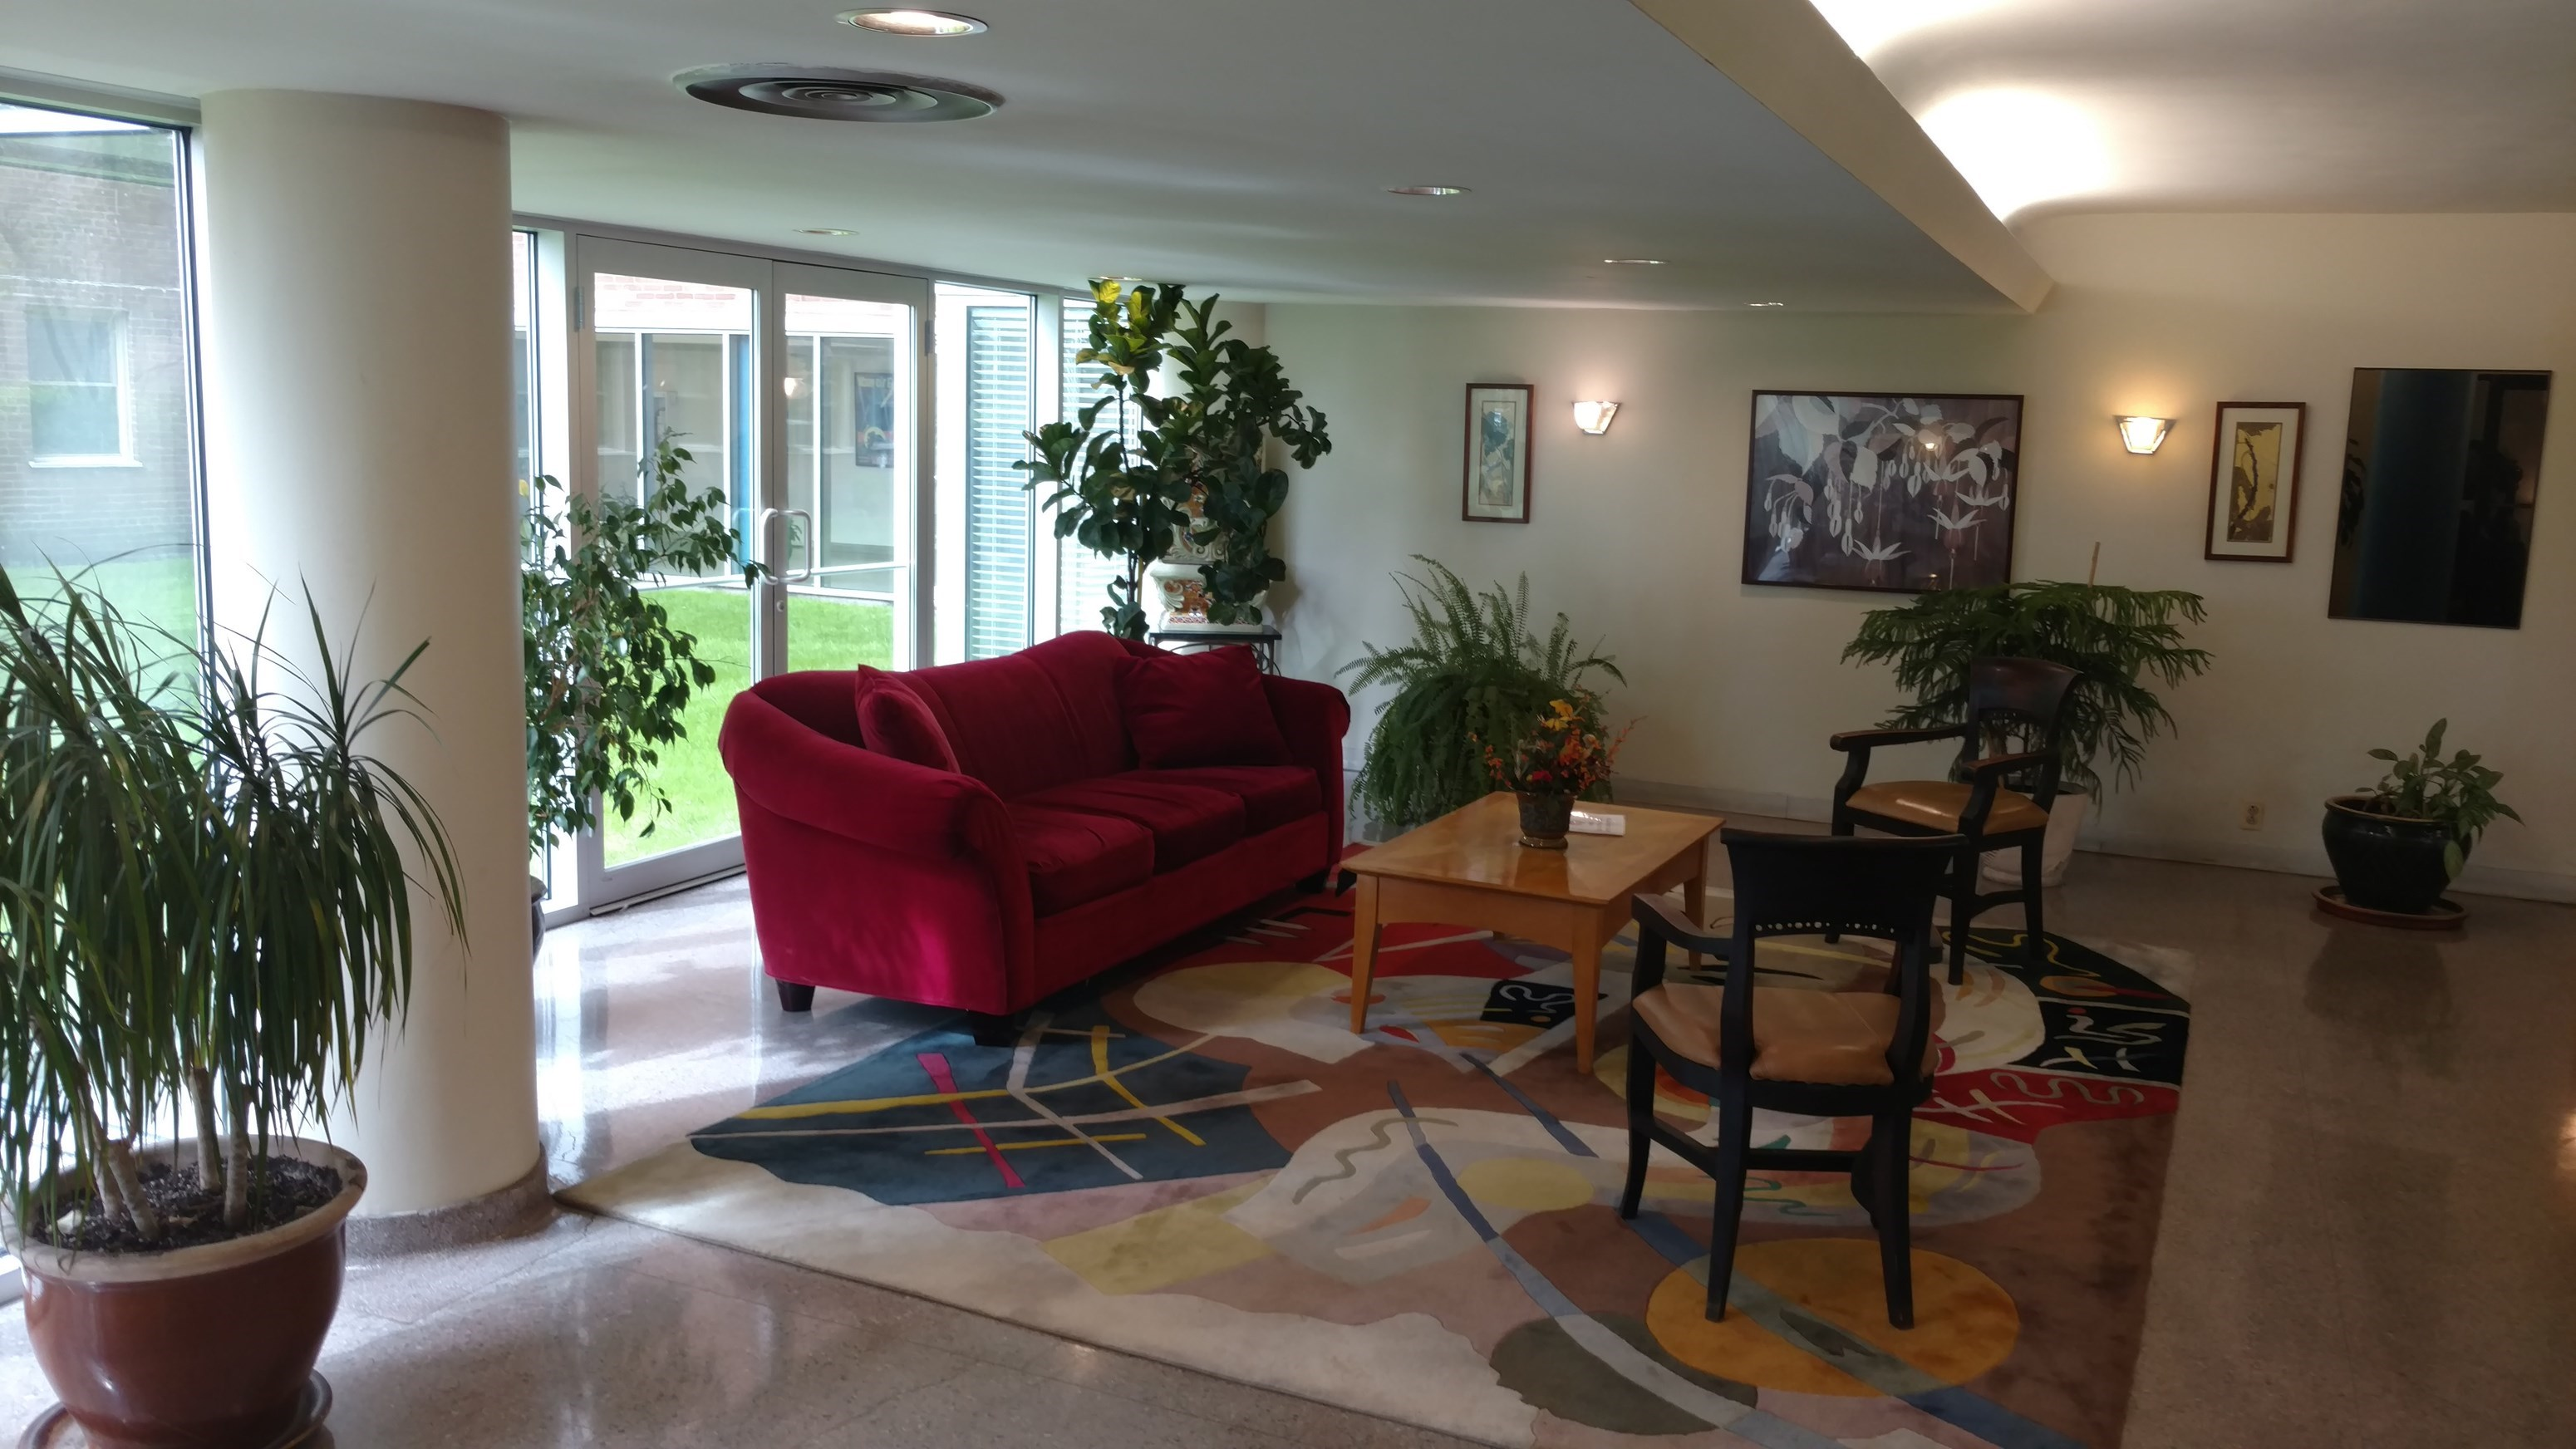 1 BHK Oct  NovTo Dec 17 Chicago Sublease   1085   Month   Clean LakeRooms for Rent Chicago  IL   Apartments  House  Commercial Space  . 1 Bedroom Apartments In Chicago Il. Home Design Ideas